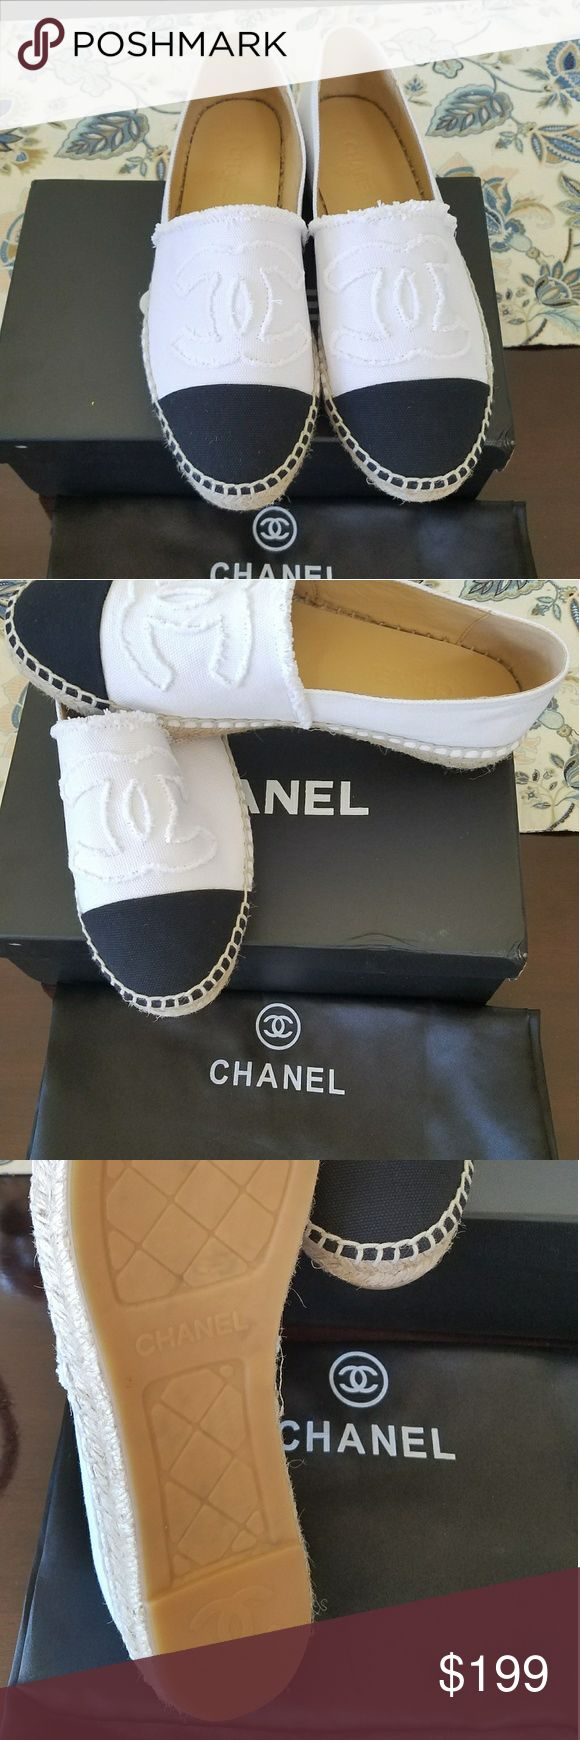 Chanel Espadrilles Canvas White Canvas Espadrilles. price reflects auth. Leather insole. made is in Spain. All details in place.  Run small - for a best fit order 1 FULL size LARGER than you usually wear.  Sorry - no trades ! No exchanges or returns. Price is firm. Allow 2 weeks for delivery.  Come in a box and with a dust bag.  size eu 36 =22.5-23 cm size eu 37 =23-23.5 cm size eu 38 =23.5-24 cm size eu 39 =24-24.5 cm size eu 40 =24.5-25 cm size eu 41 =25-25.5 cm size eu 42 =25.5-26 cm…